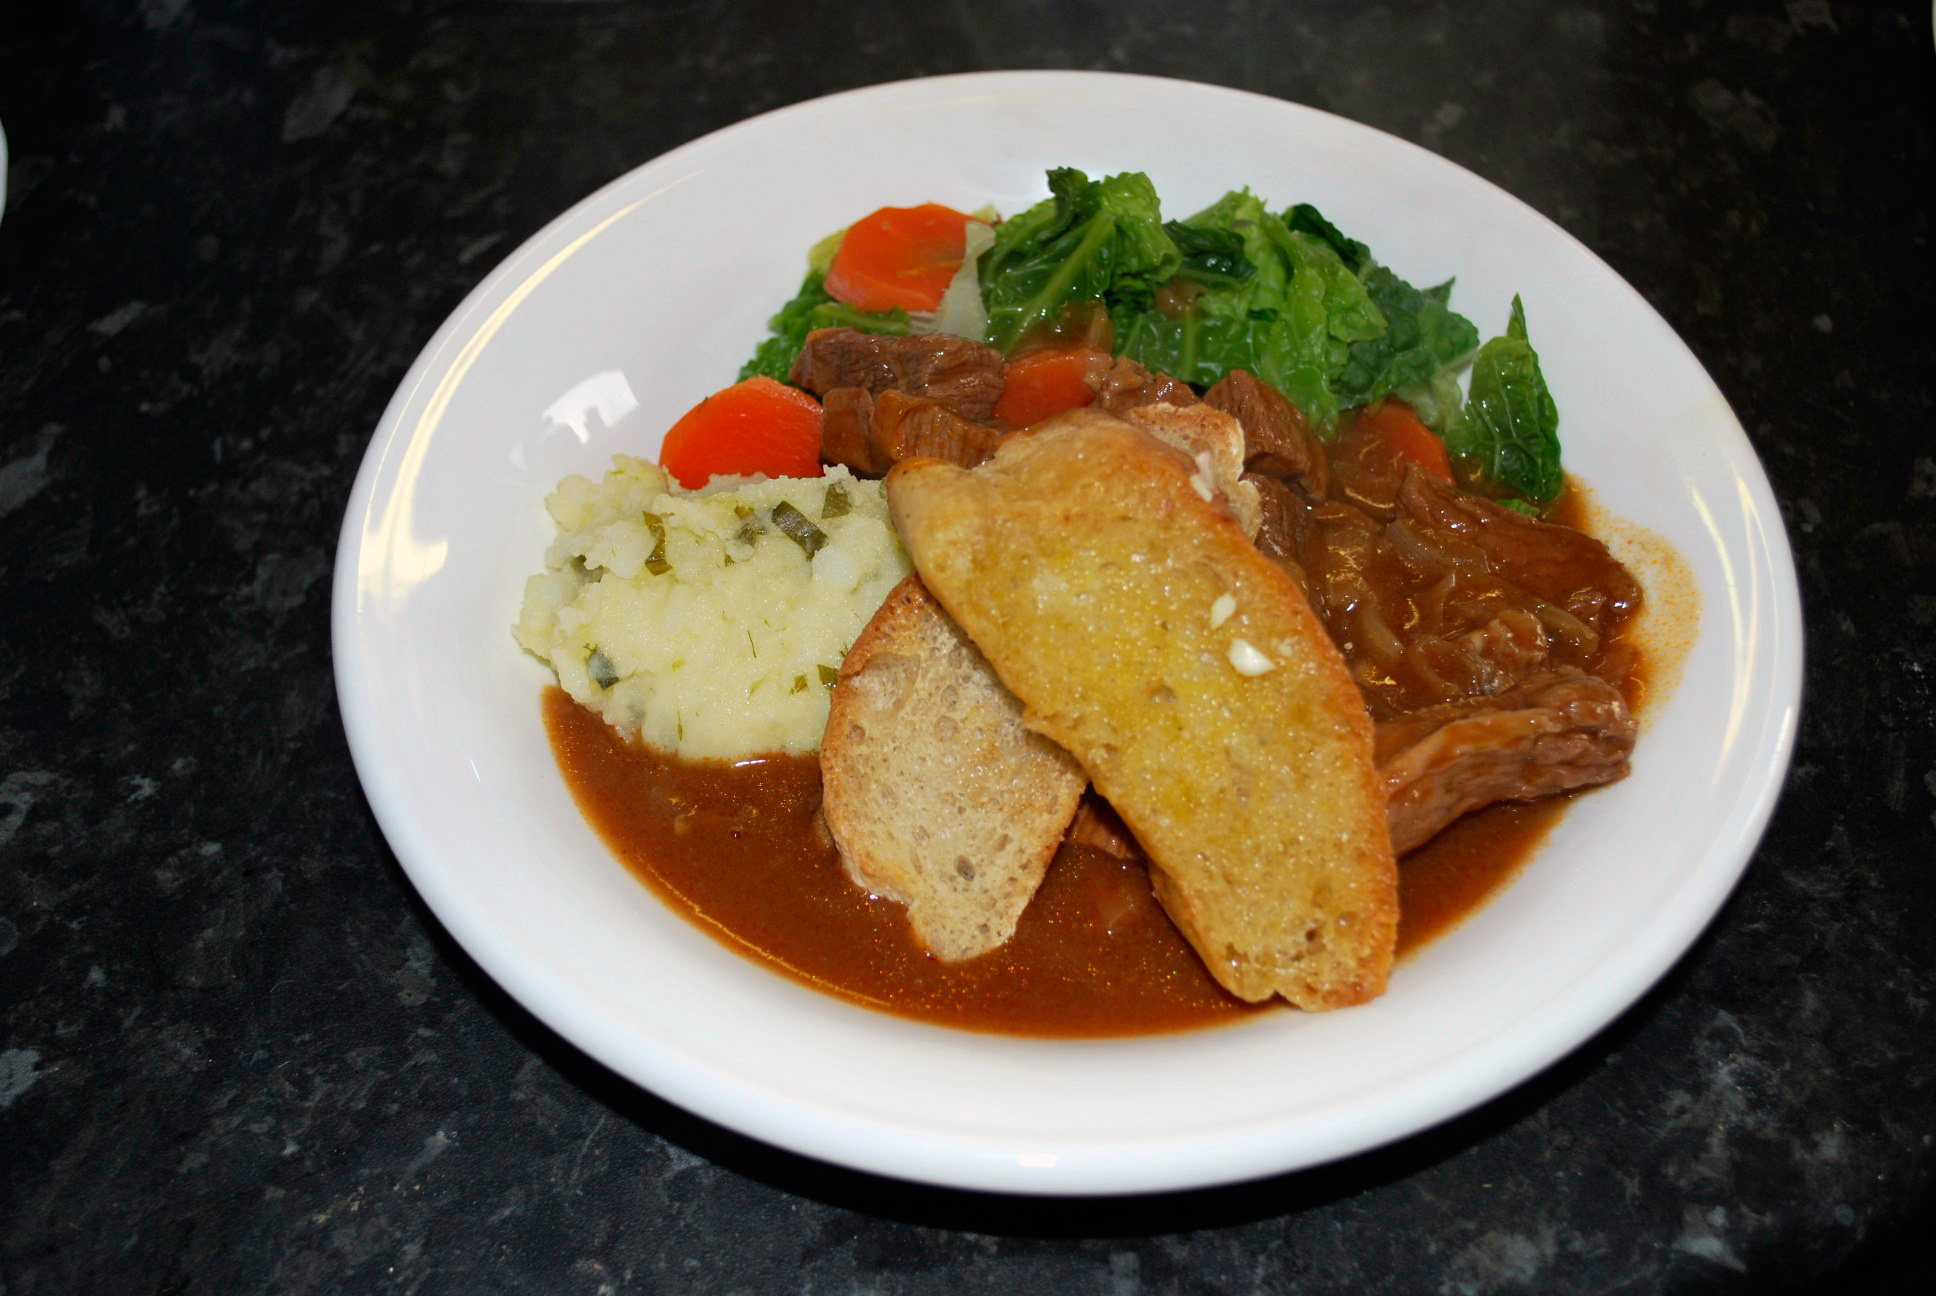 Beef in Guinness with Garlic Croutes